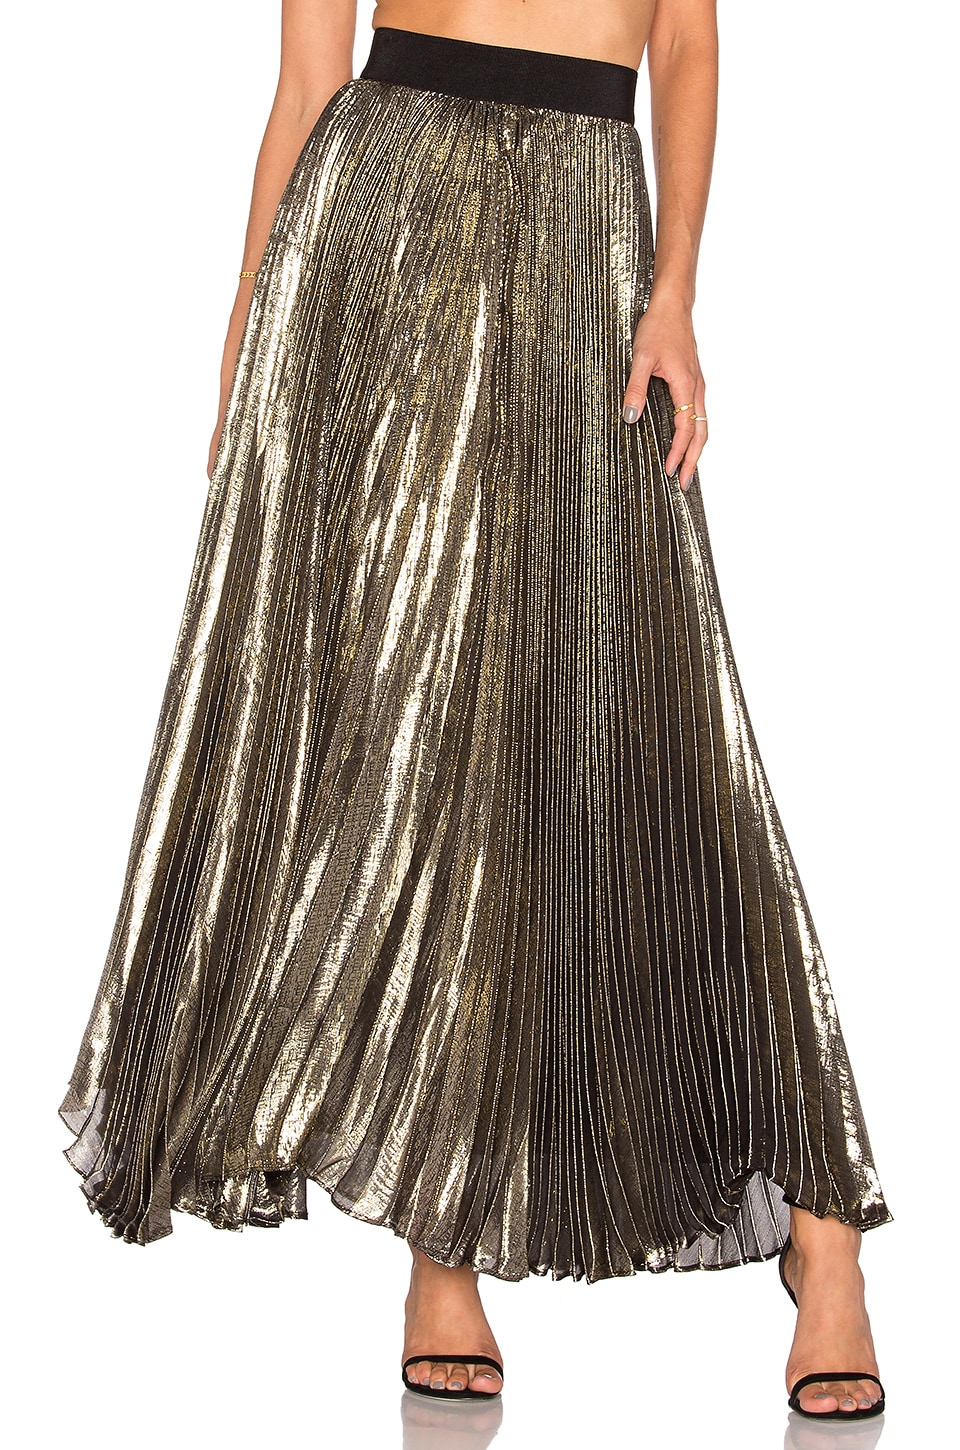 Alice   Olivia Katz Pleated Maxi Skirt in Gold & Black | REVOLVE